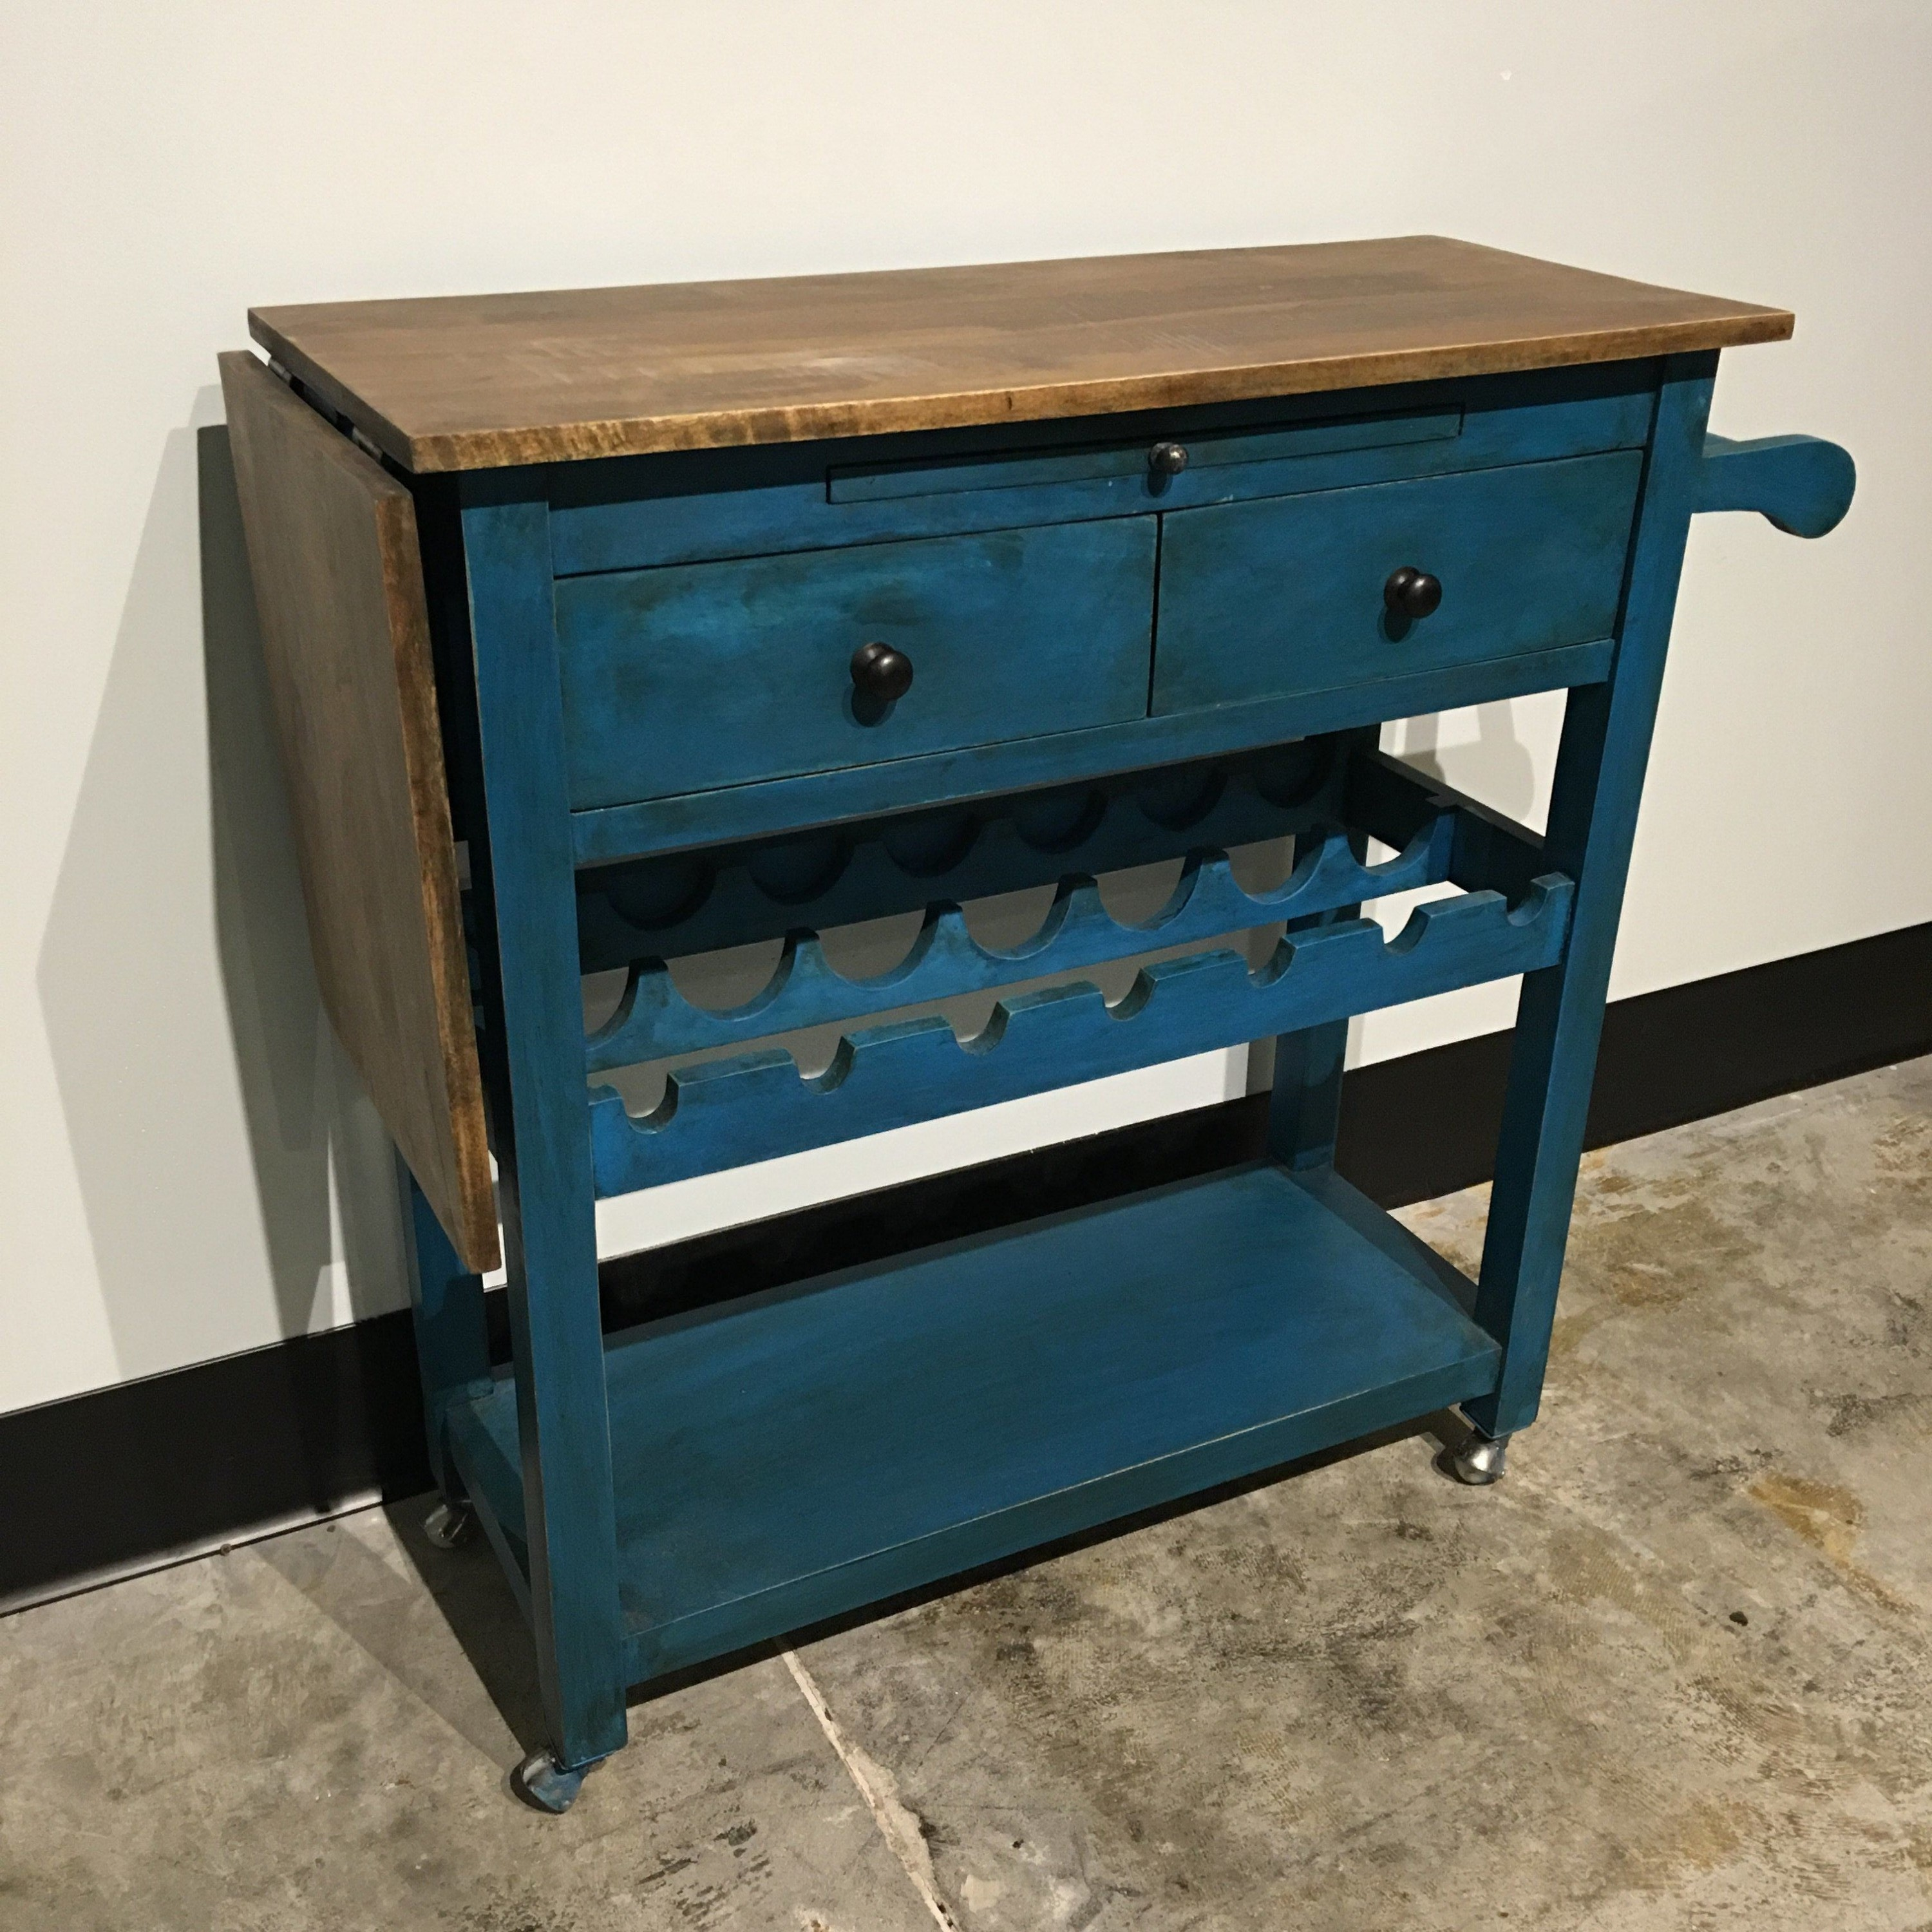 Table with Wine Storage